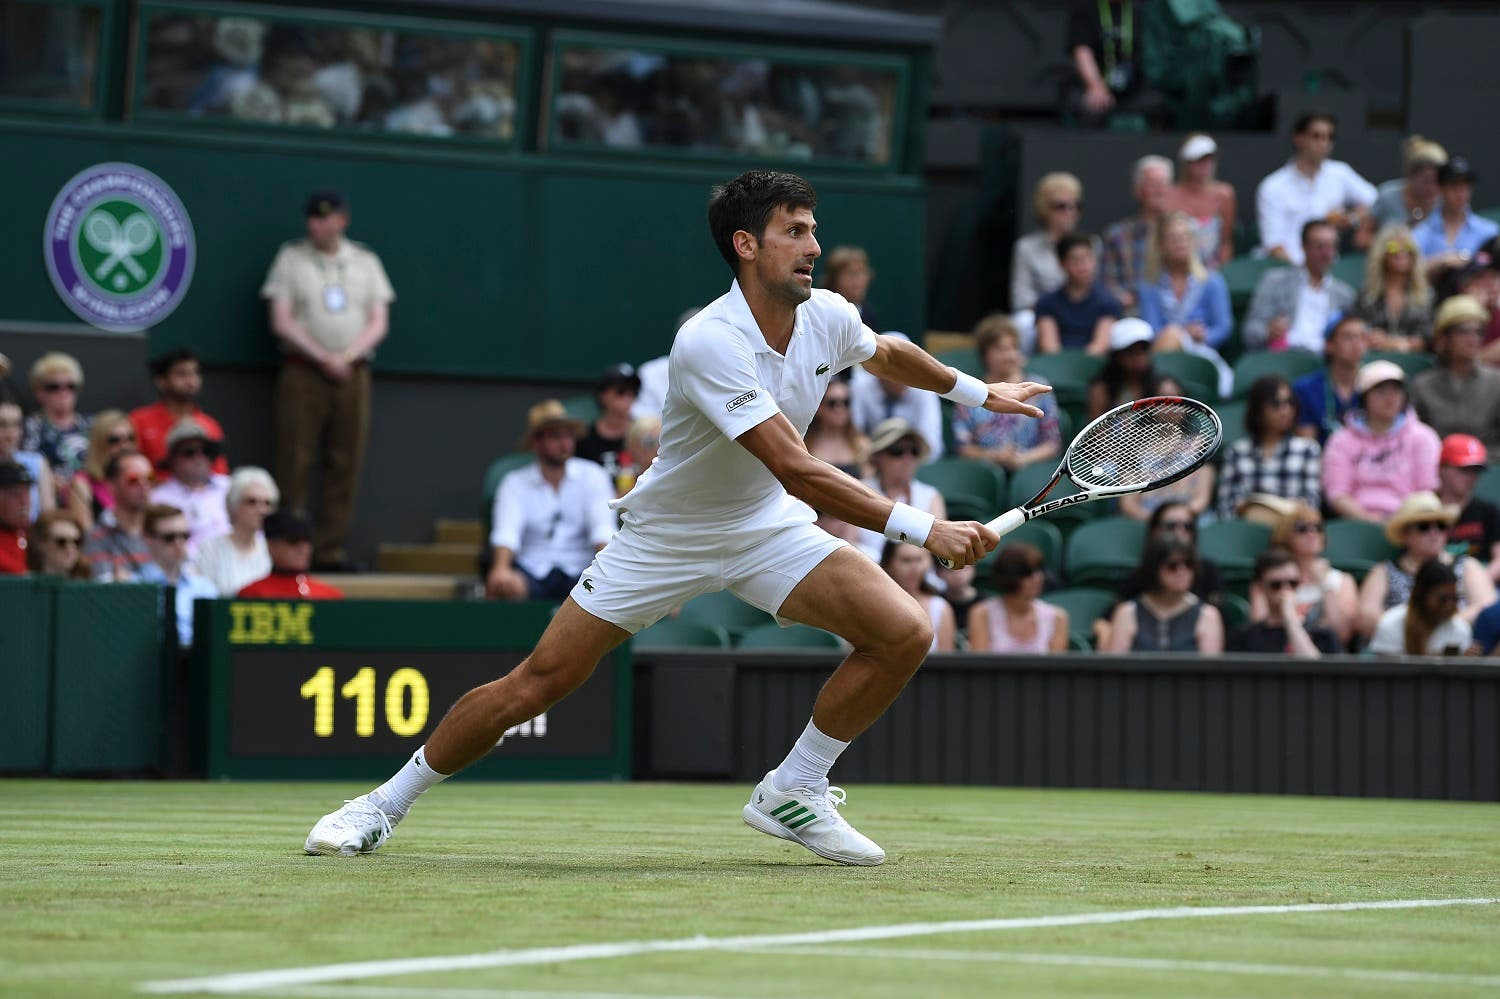 Serbia's Novak Djokovic returns against Slovakia's Martin Klizan during their men's singles first round match on the second day of the 2017 Wimbledon Championships at The All England Lawn Tennis Club in Wimbledon, southwest London, on July 4, 2017. (AFP)